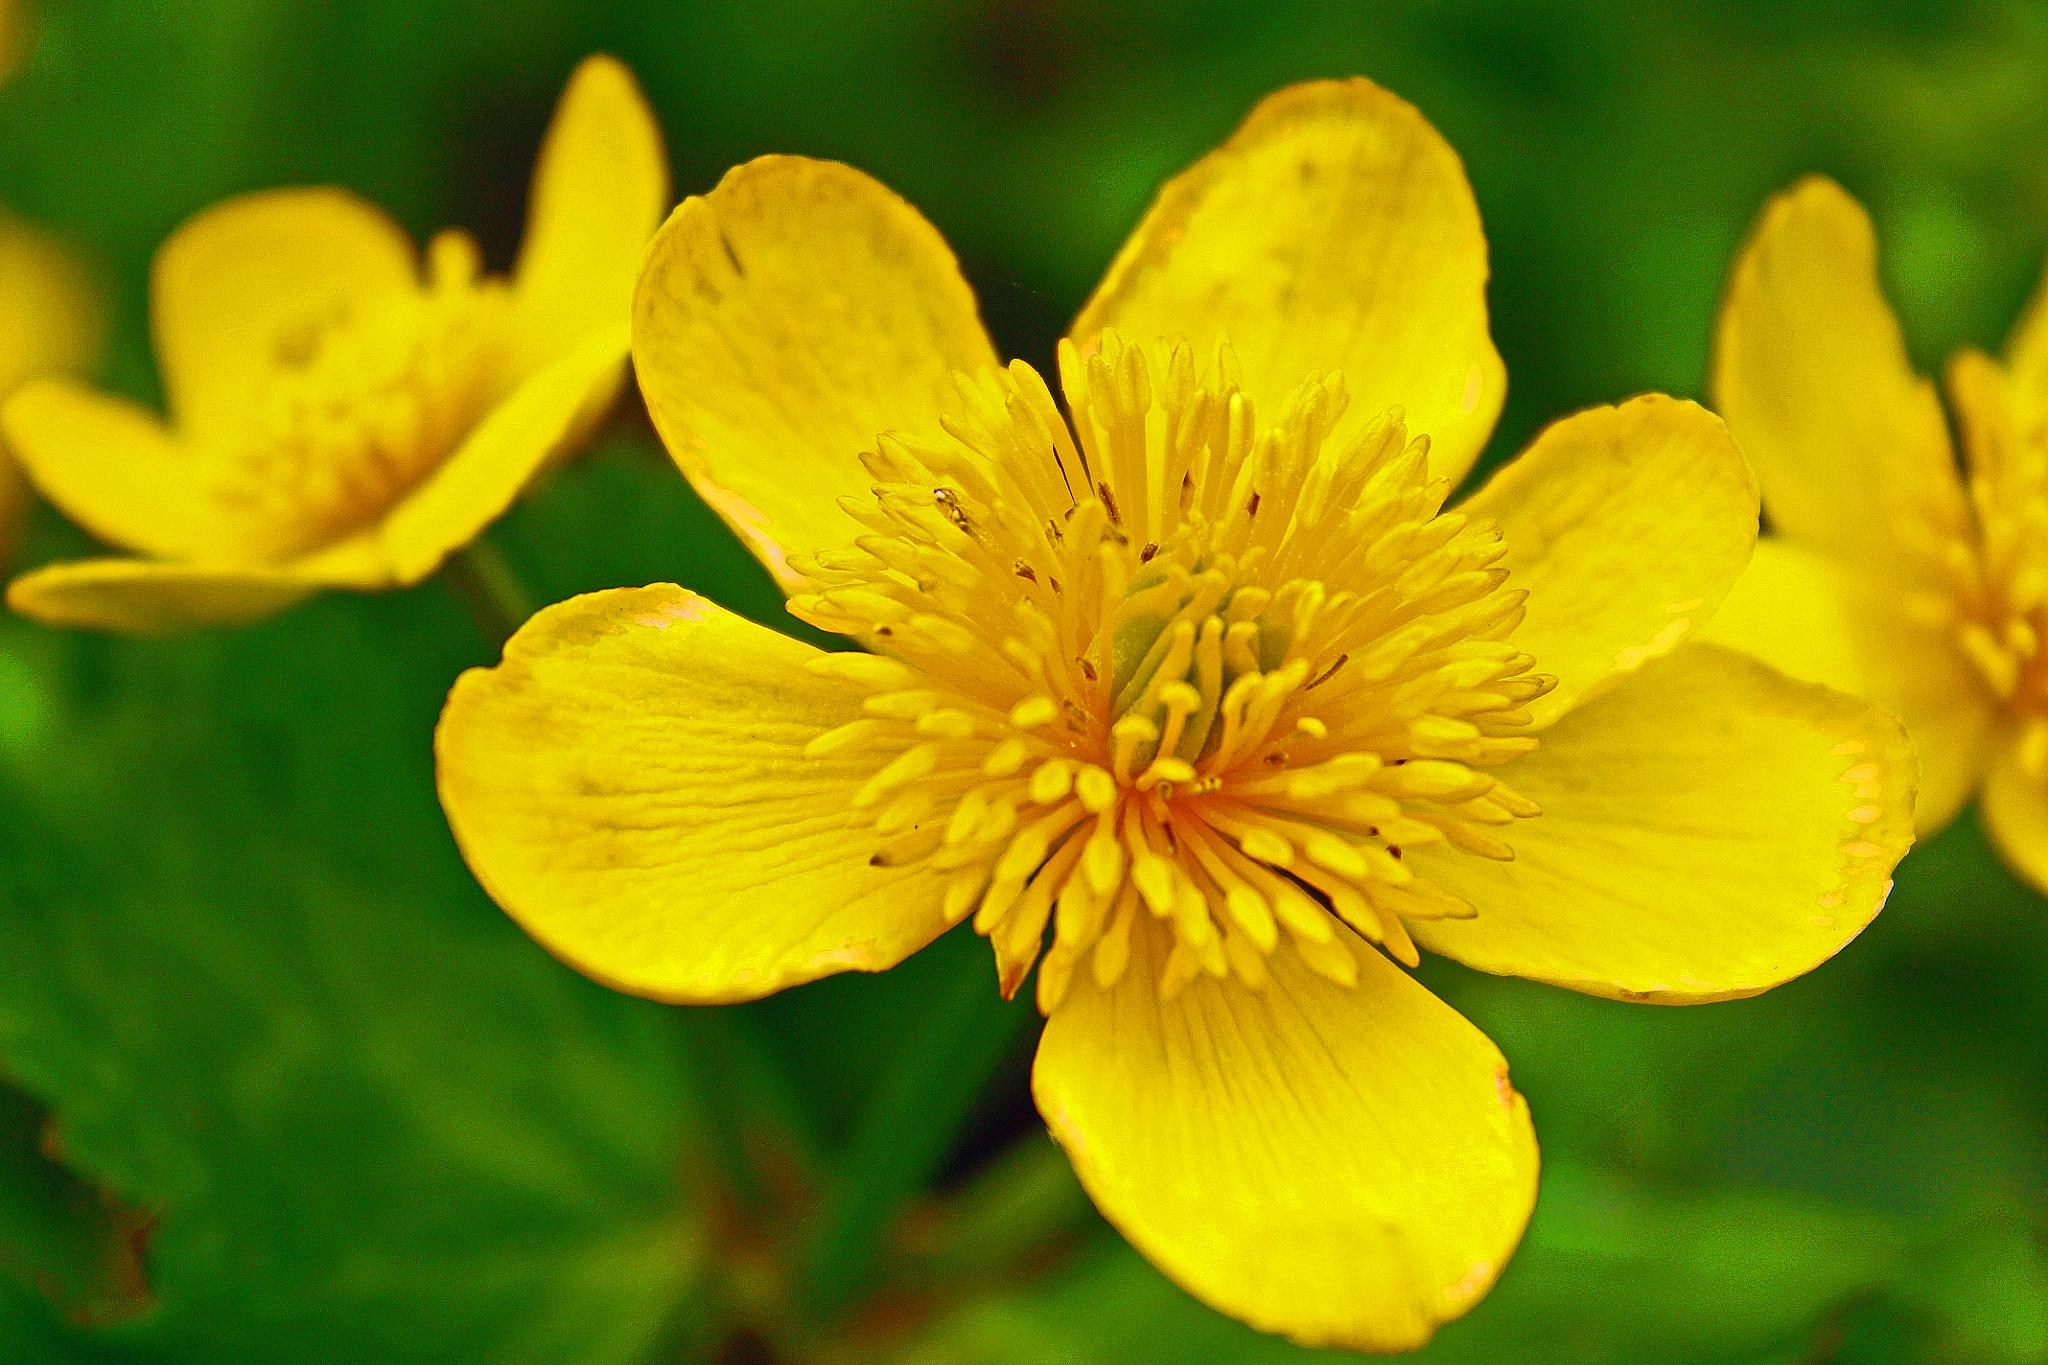 Marsh marigold or Kingcup by ananthatejas